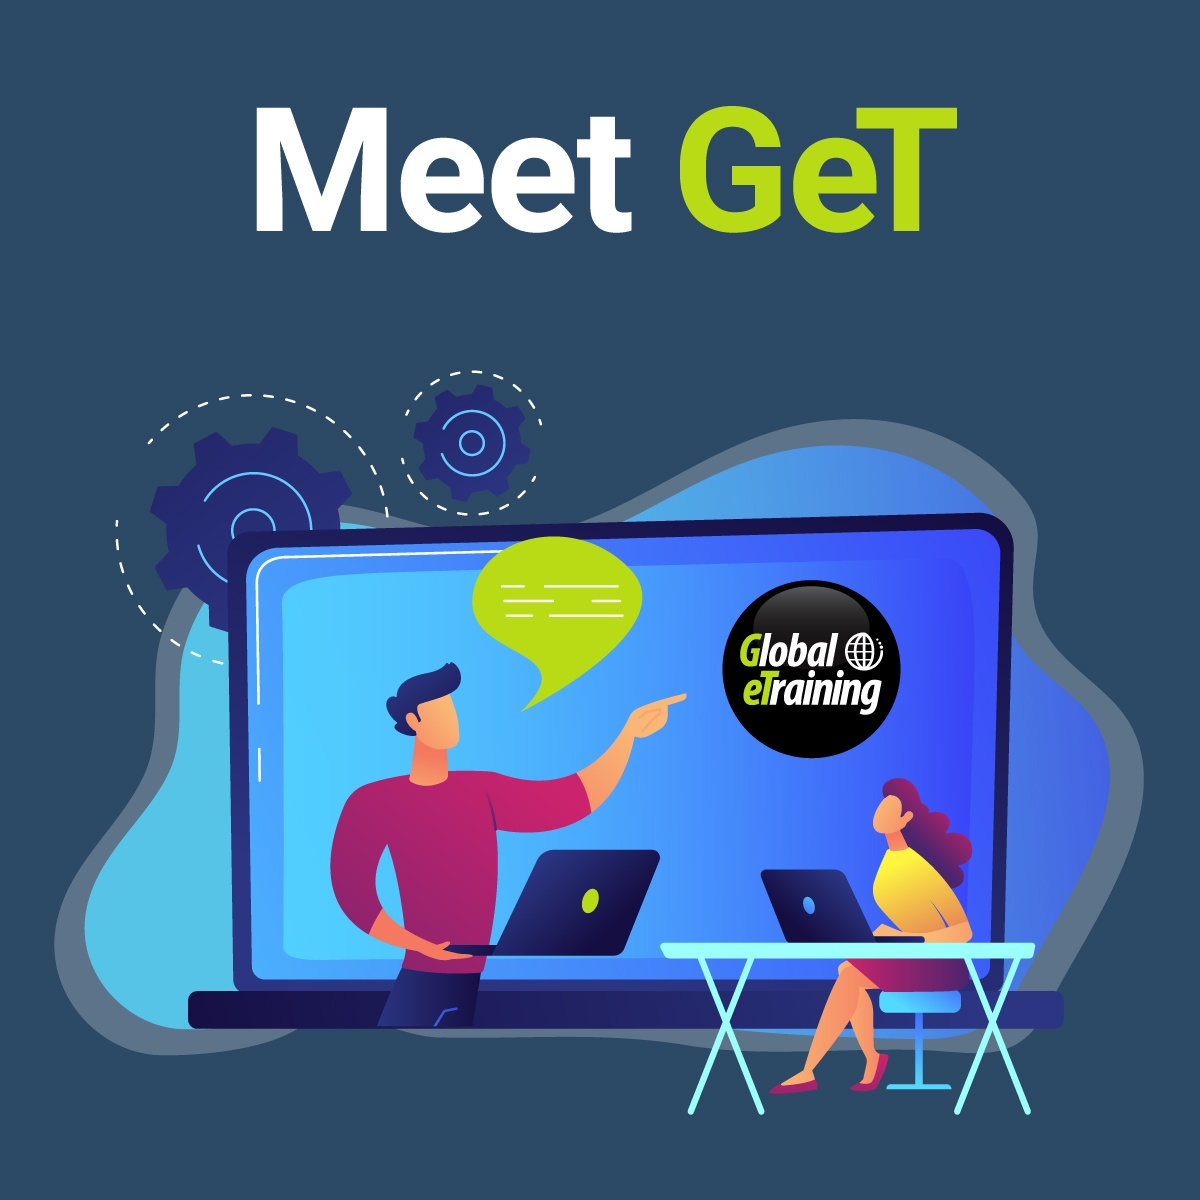 Meet GeT: How to GeT What Matters by Learning Faster, Working Smarter, Sharing More, and Giving Back